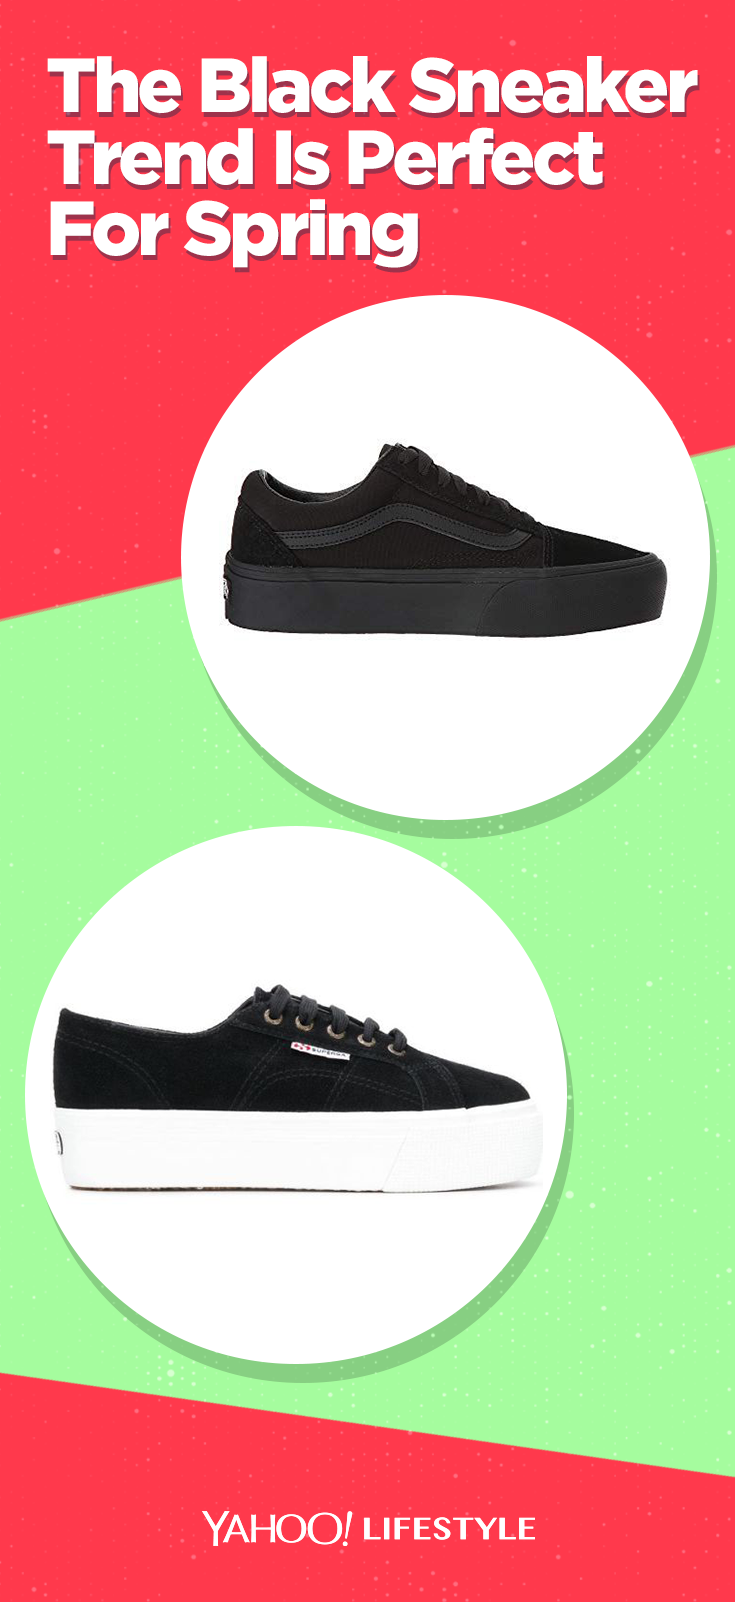 The 2019 sneaker trend that fashionable